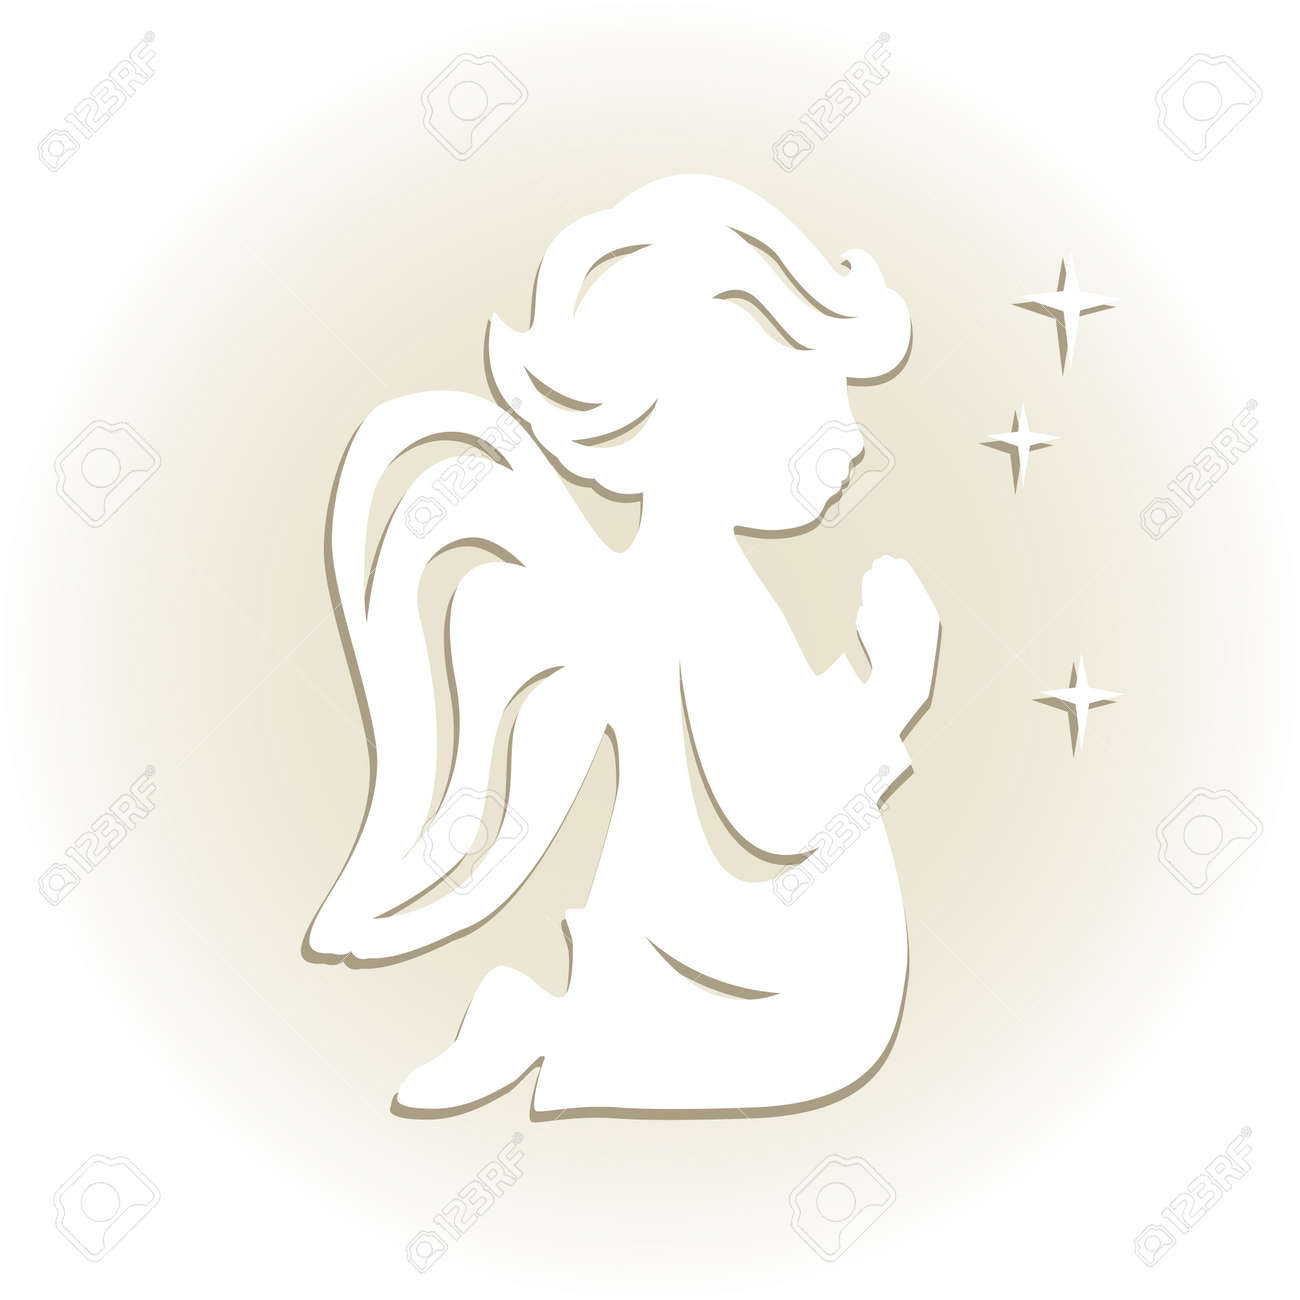 Template Angel For Cut Of Laser Or Engraved Stencil For Paper